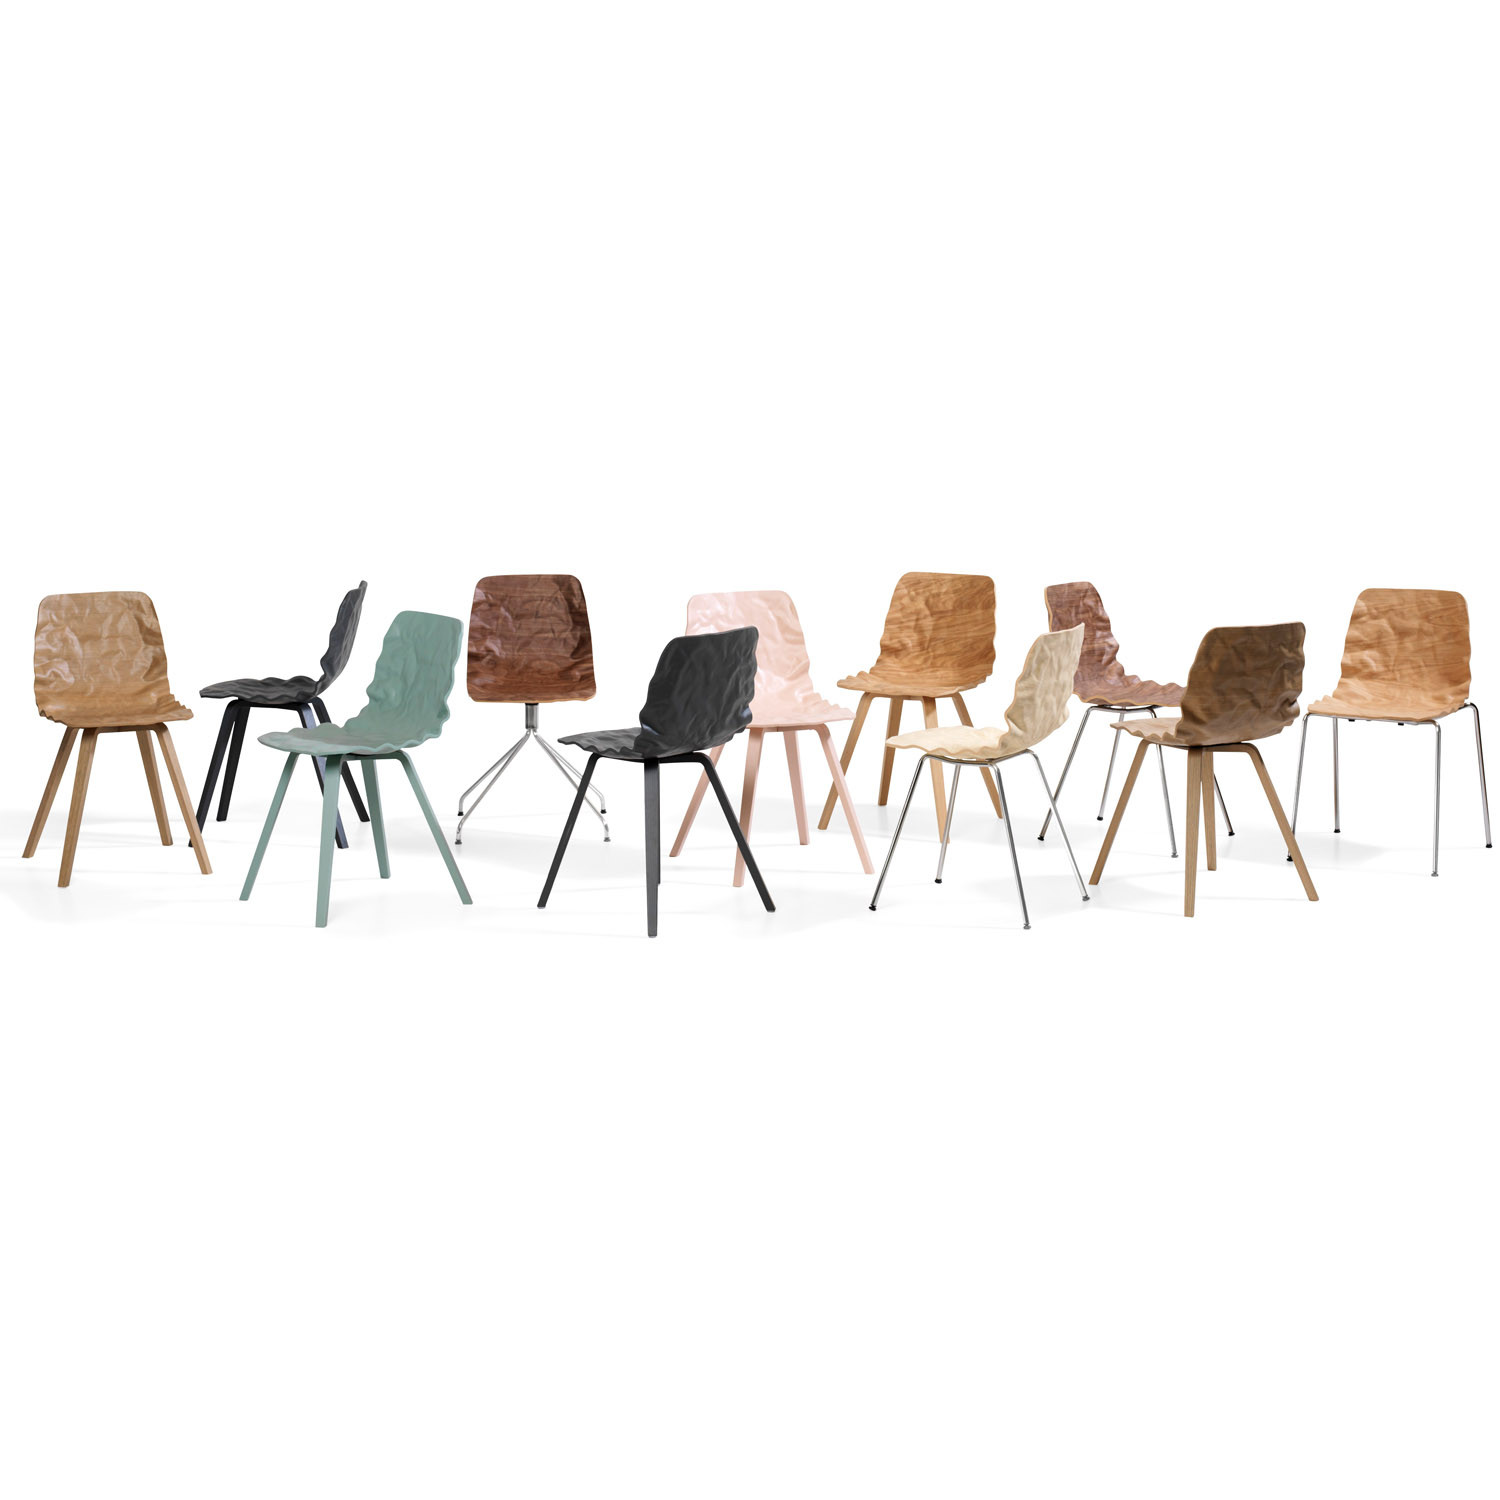 Dent Wood Chairs B504 by Bla Station